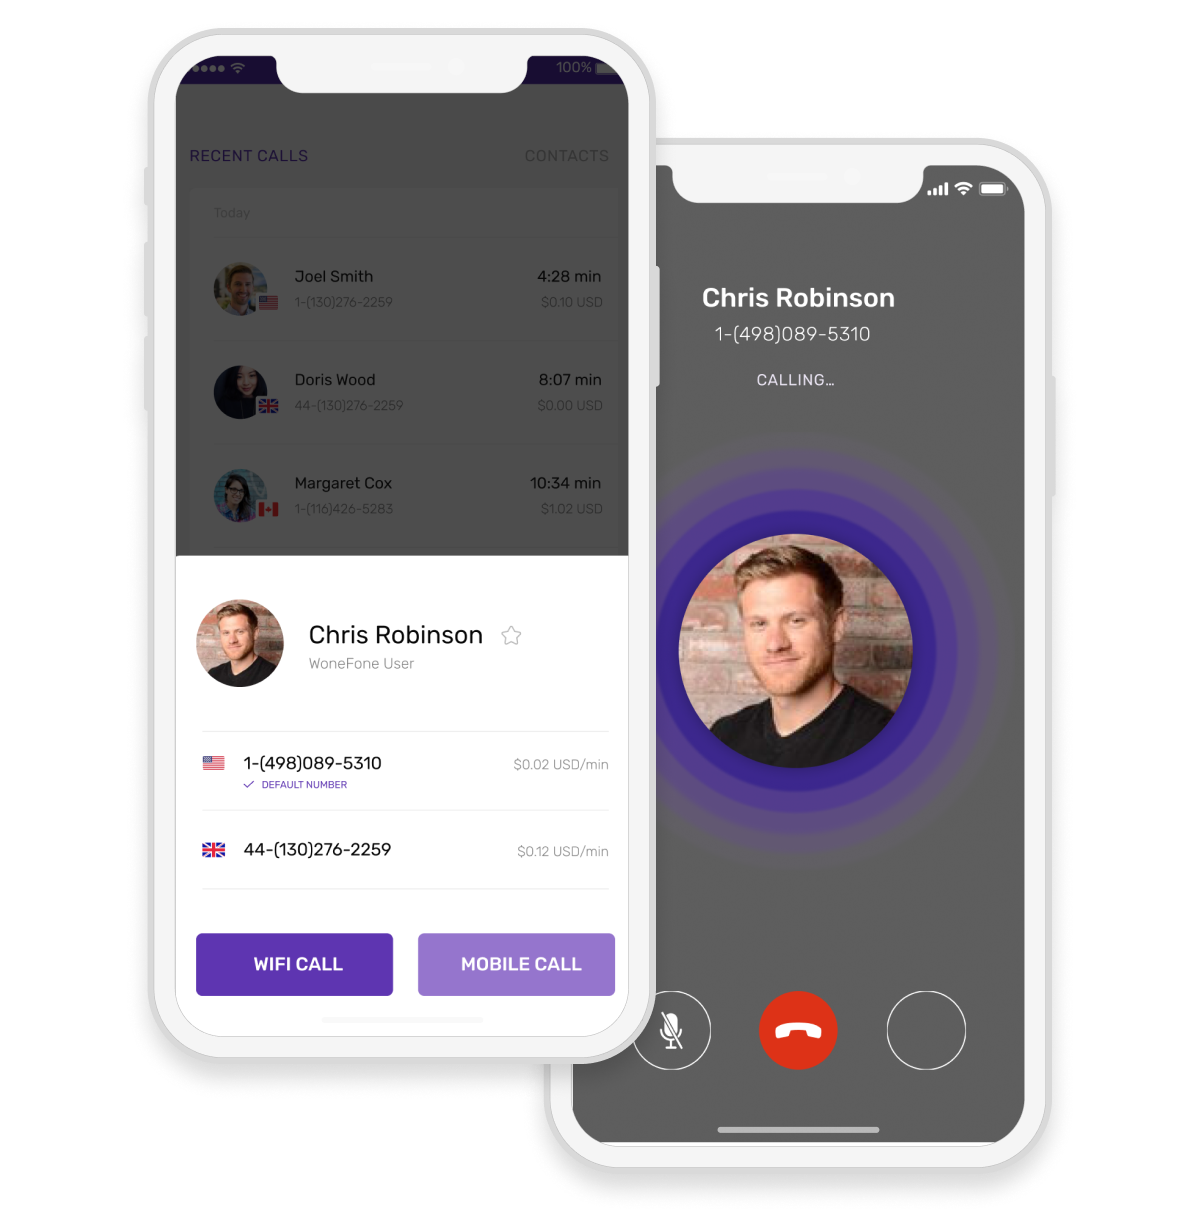 VoIP Calling and messaging app